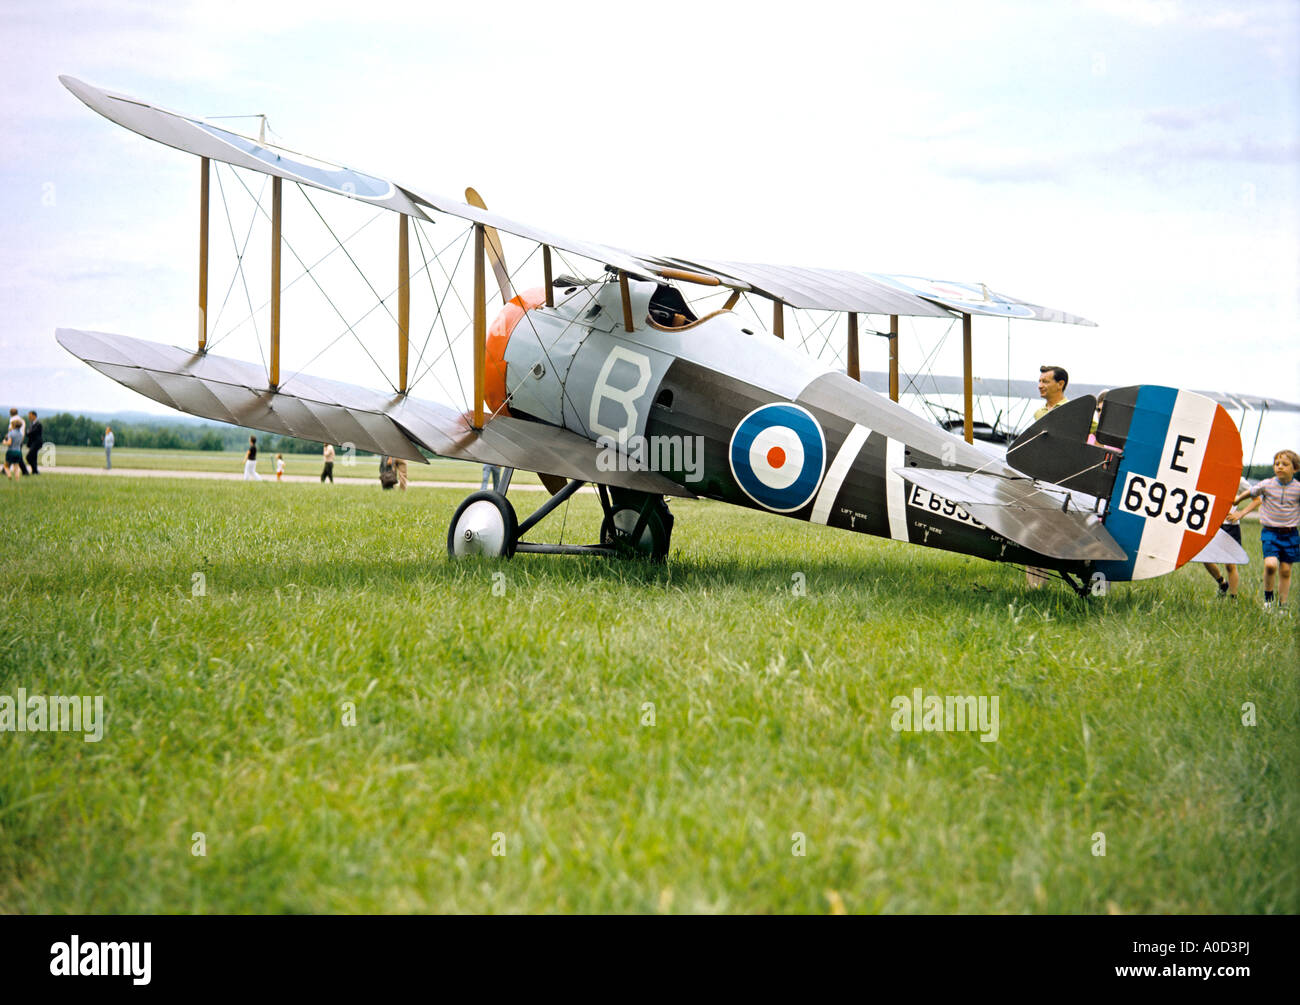 Sopwith Snipe E6938 historic biplane at Rockcliffe Air Museum Ottawa Canada - Stock Image